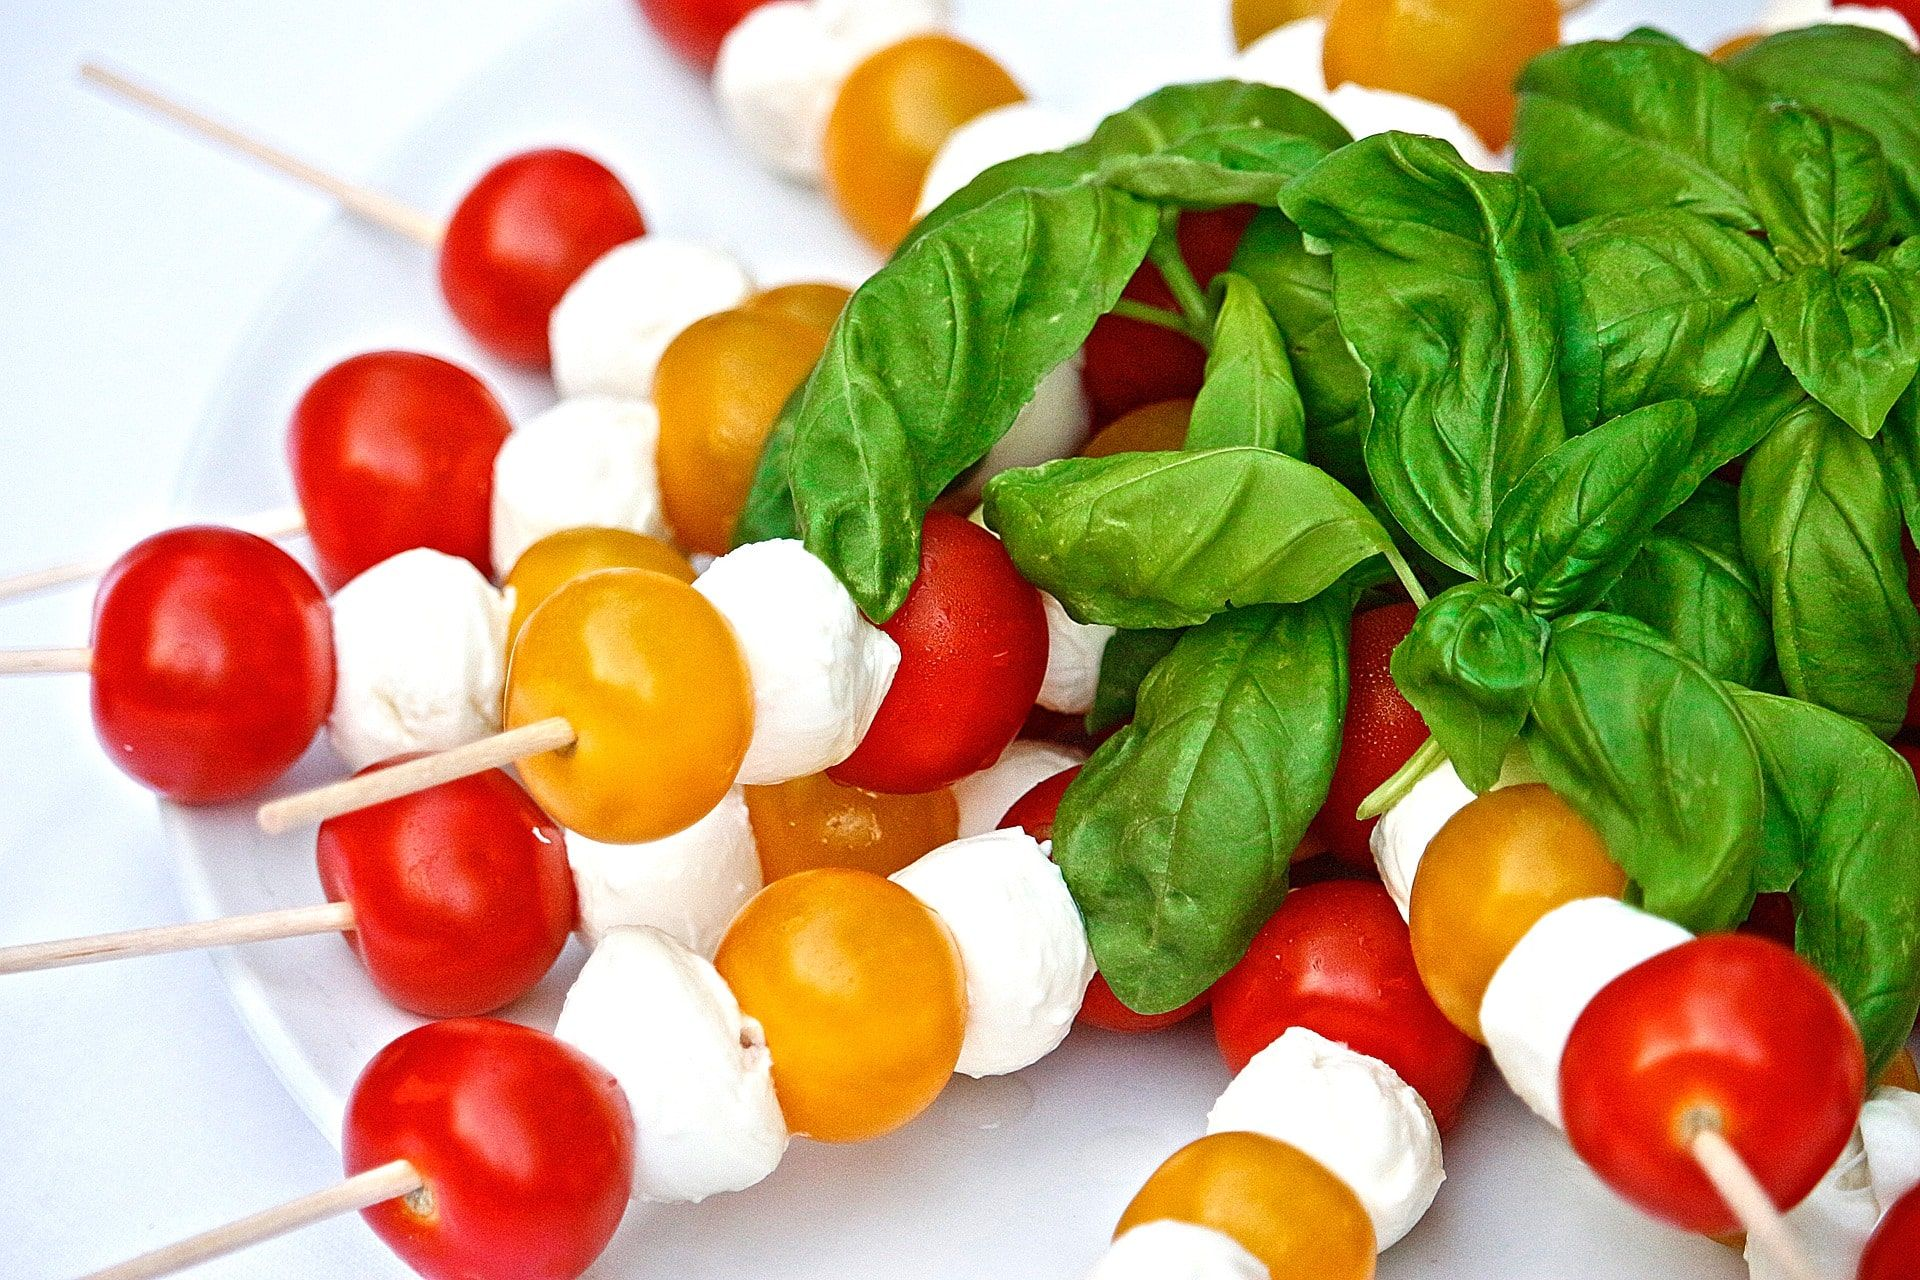 caprese salad - Caprese Salad is an Italian classic and a loved flavour combination, but salads can be a little annoying to take to a picnic, which is why these two recipes are perfect.Tablespoon's Hasselback Tomato Caprese means you can get a mouthful of tomato, mozzarella and basil with every bite, they can also be eaten with your fingers so no need for knives and forks! You could size these down with smaller ingredients to make them easier for children.Another easy and simple way to have a Caprese salad is to put them on skewers! This recipe from Good Housekeeping gives all the ingredients you will need.